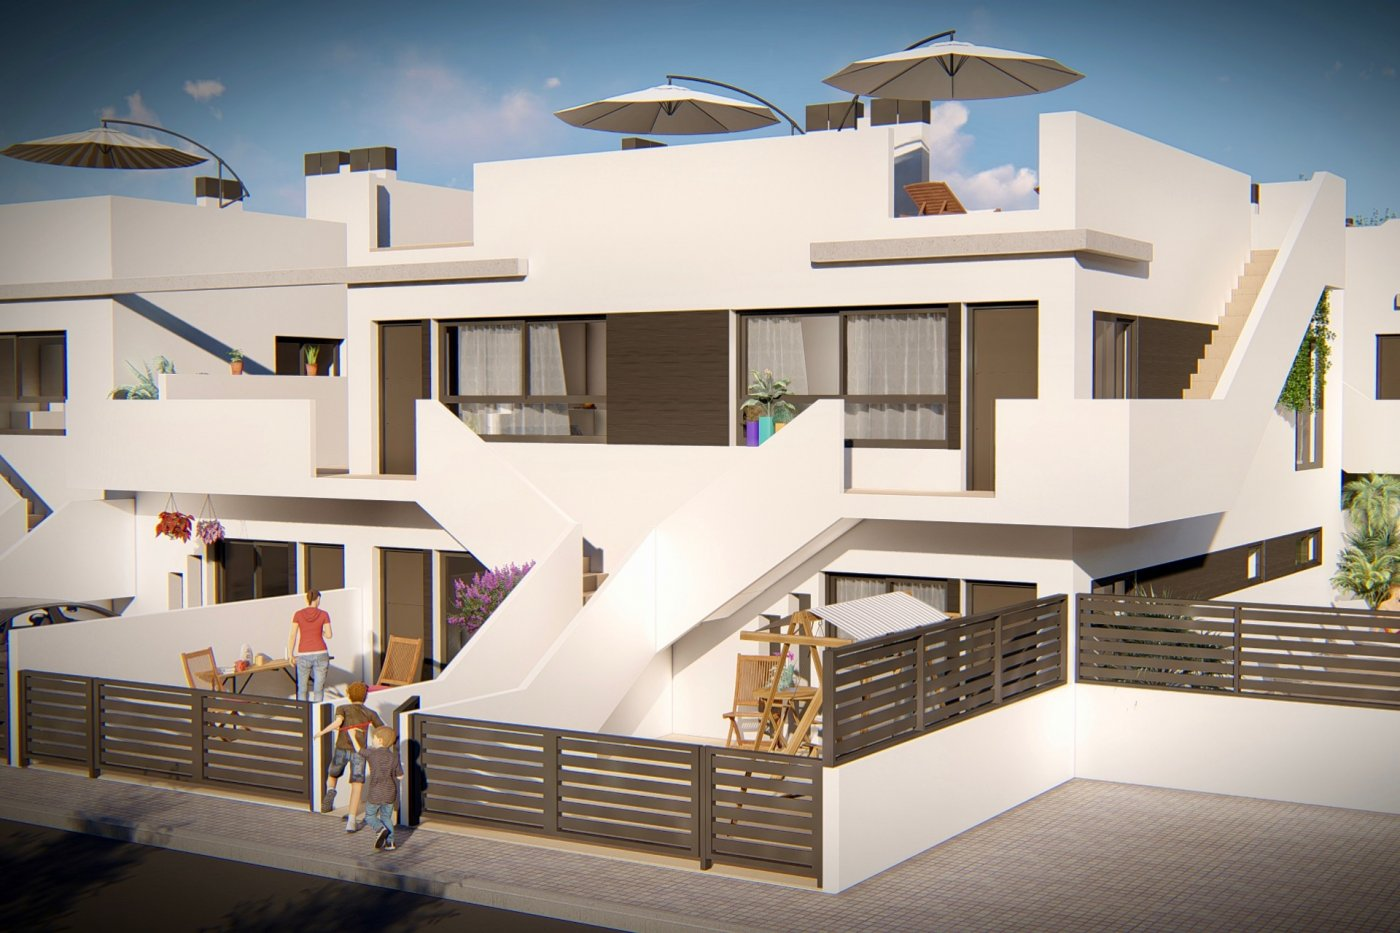 Gallery Image 12 of New build luxury apartments close the beaches, marina and centre of beautiful Lo Pagan